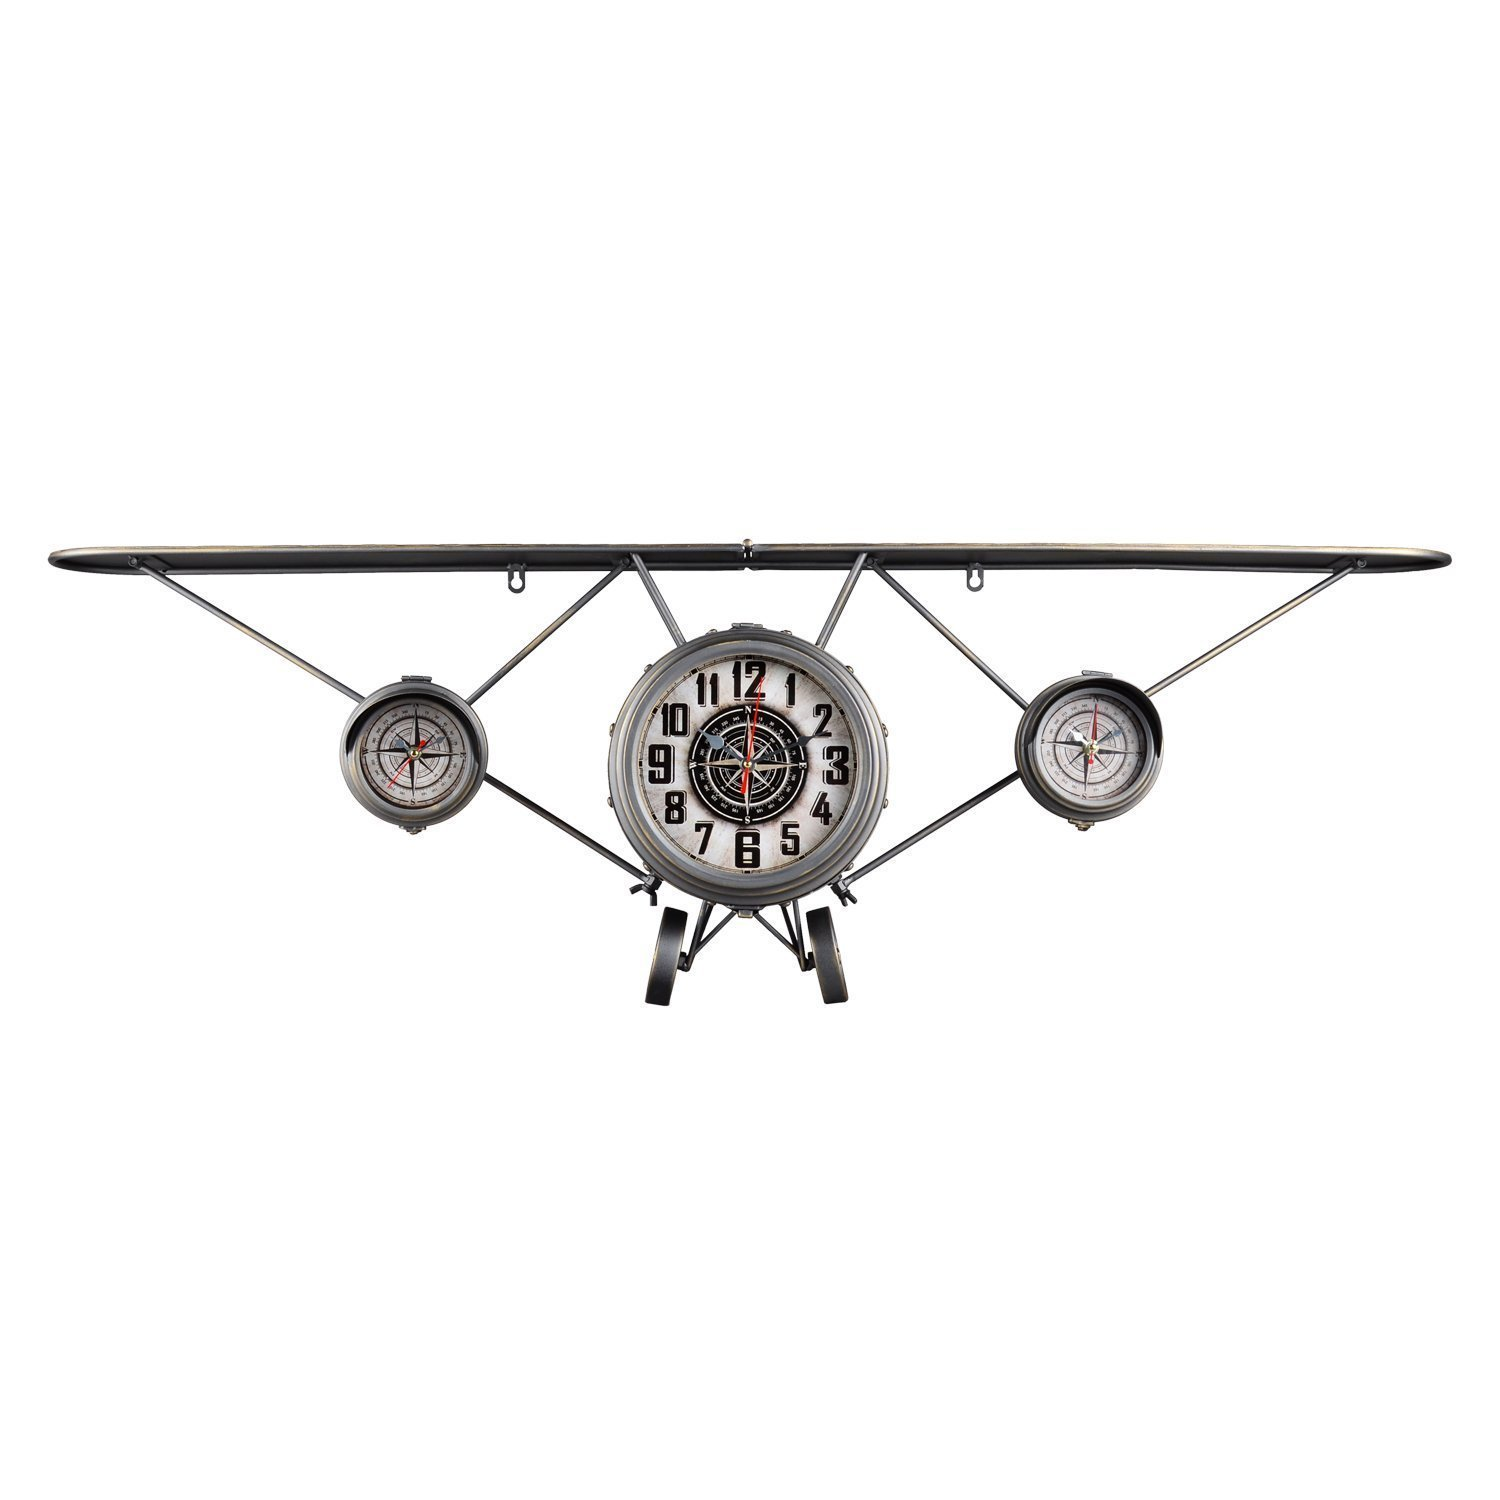 Utopia Alley Airplane Flyer Wall Clock with Side Compasses, Distressed Finish, Gunmetal